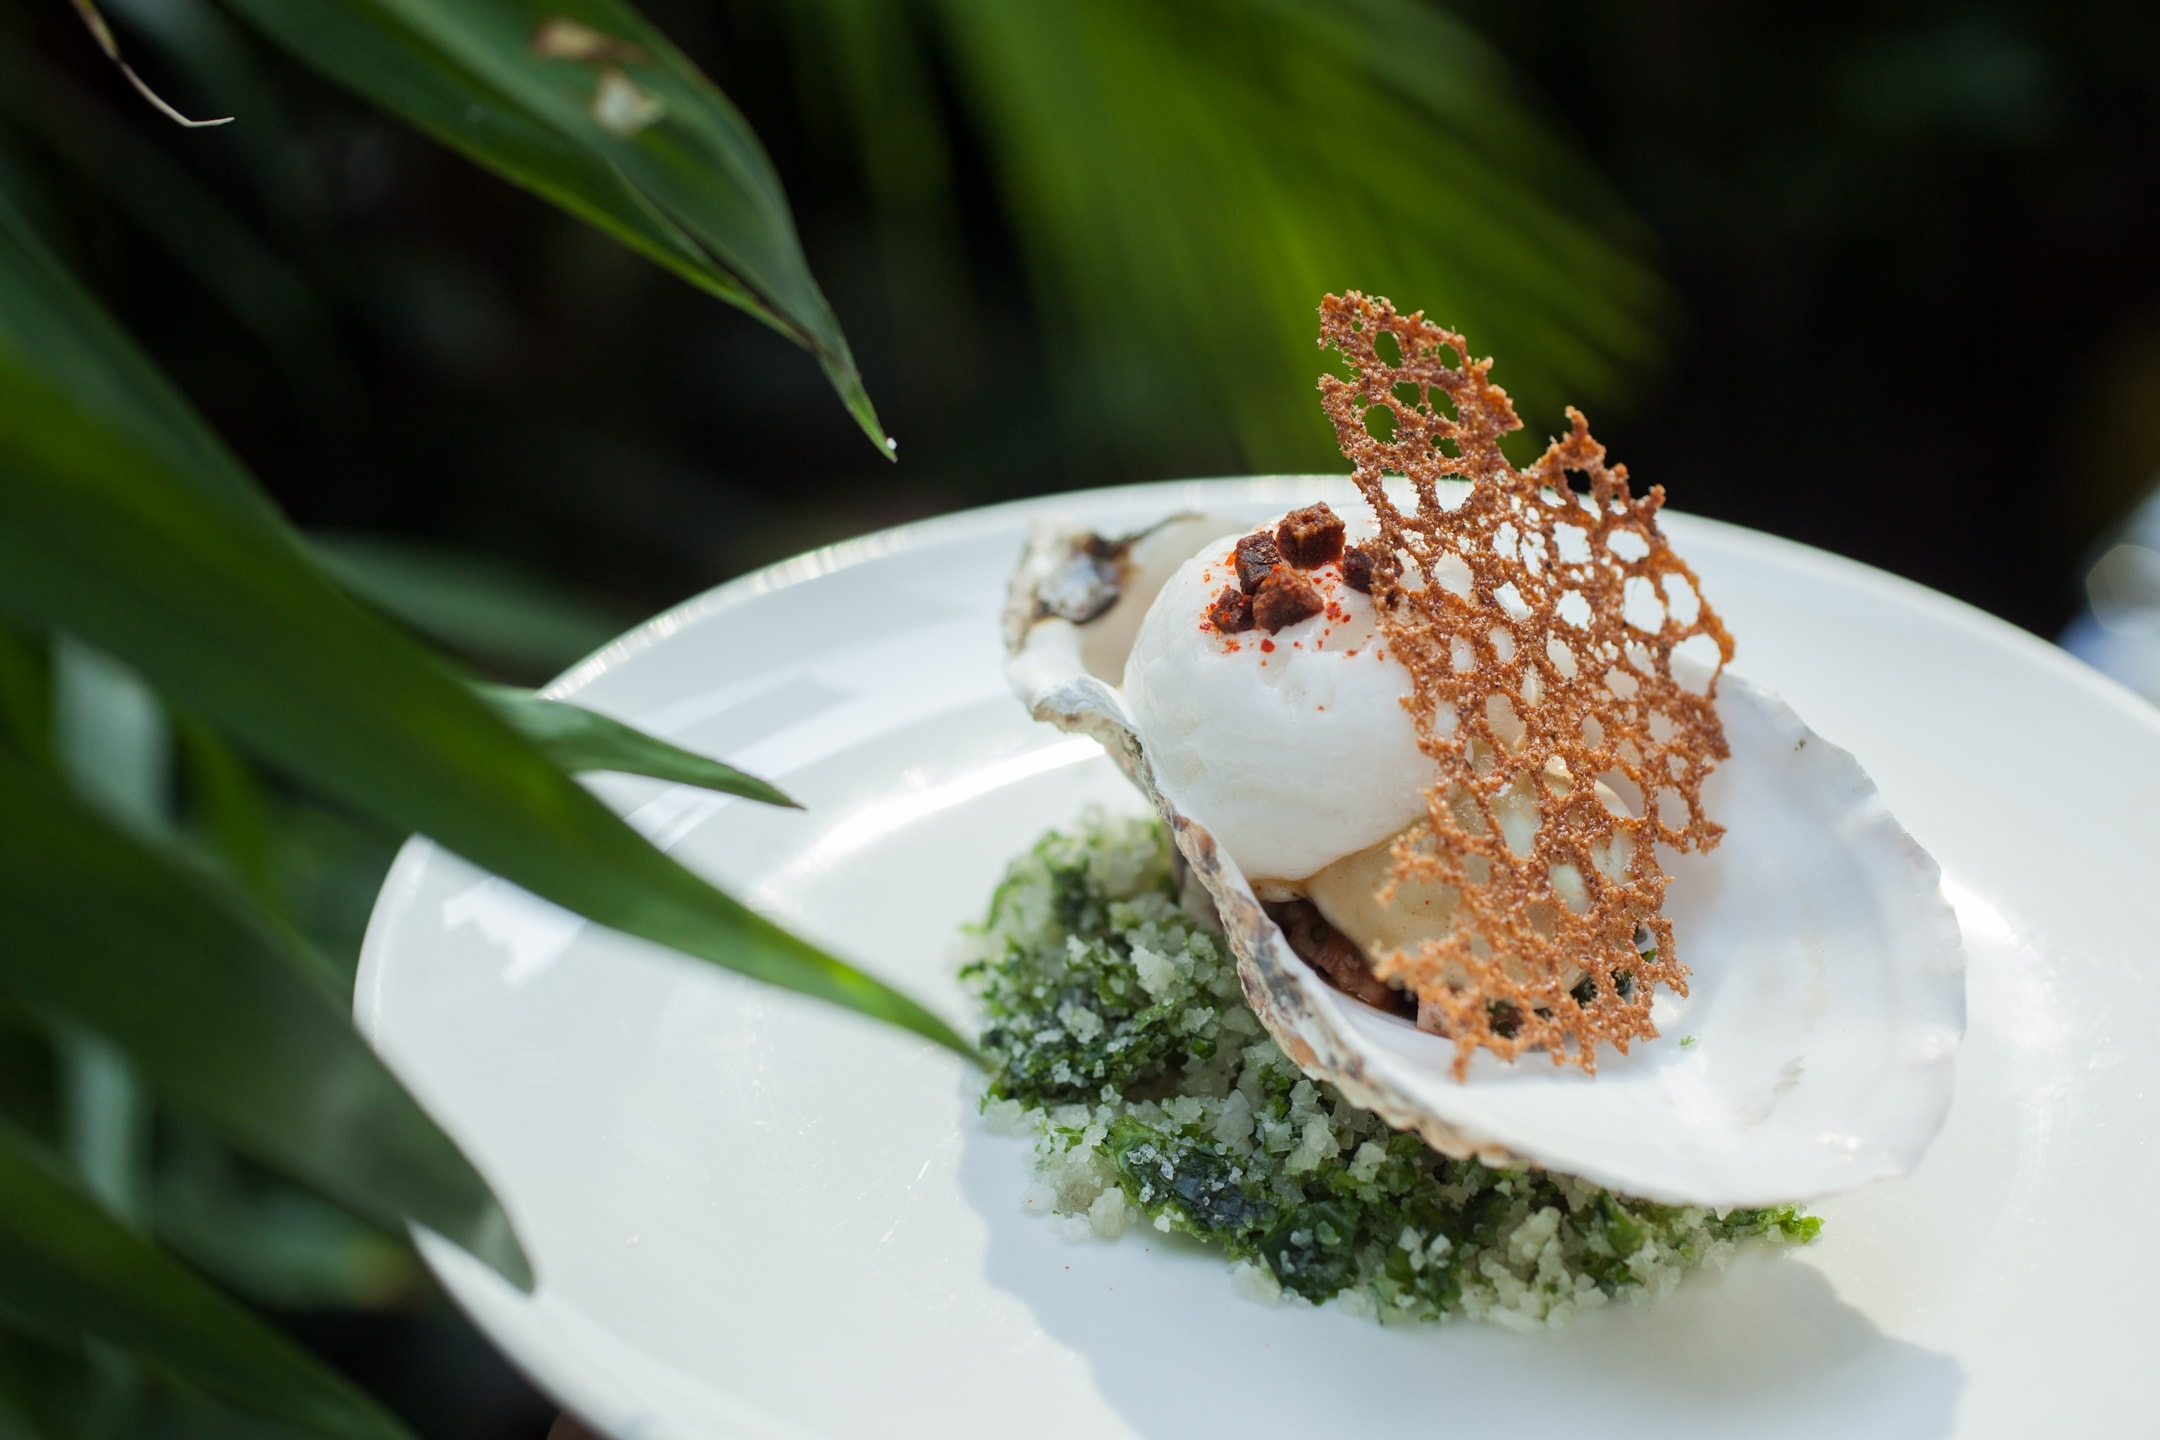 Taste of Hong Kong - Amber's Ebisu oyster with seaweed, potato & shallot slaw in tomato cloud with chipolata crumble